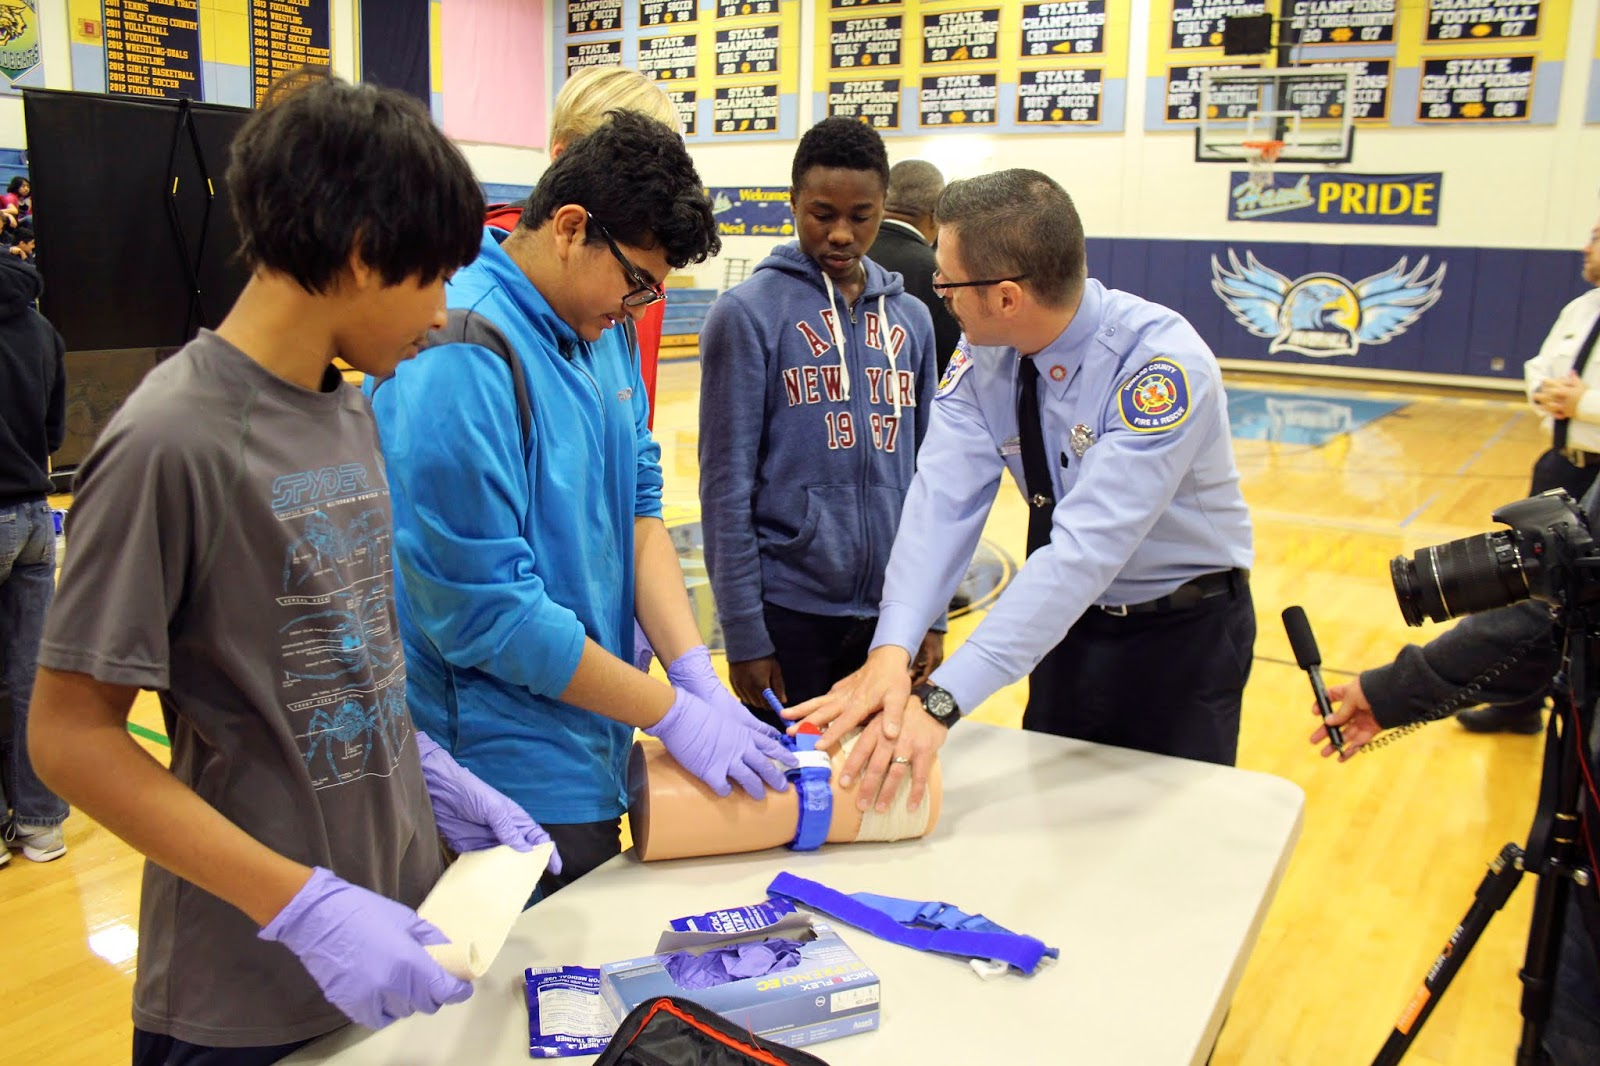 A volunteer from Howard County Fire & Rescue shows three students how to stop bleeding using a tourniquet and gauze on a model of a human limb with artificial wounds put in it. The volunteer puts pressure on the fake limb while one of the students - who is wearing gloves - manipulates the tourniquet. A camera sits on a tripod to the right, filming this, with a hand holding a microphone out to capture sound.